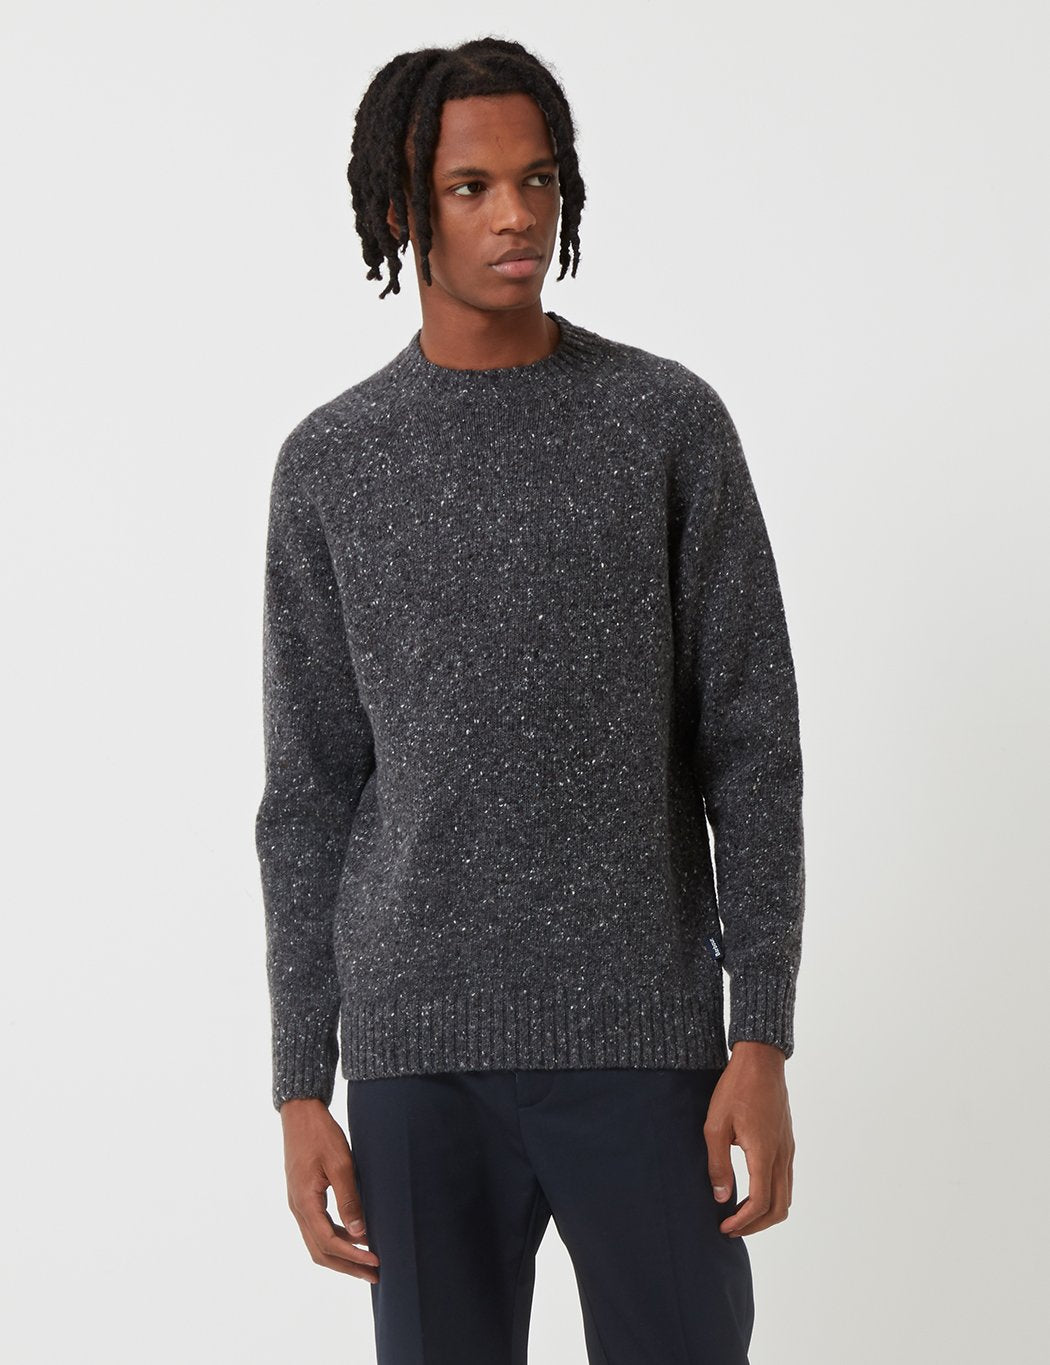 Barbour Netherton Knit Sweatshirt - Charcoal Grey